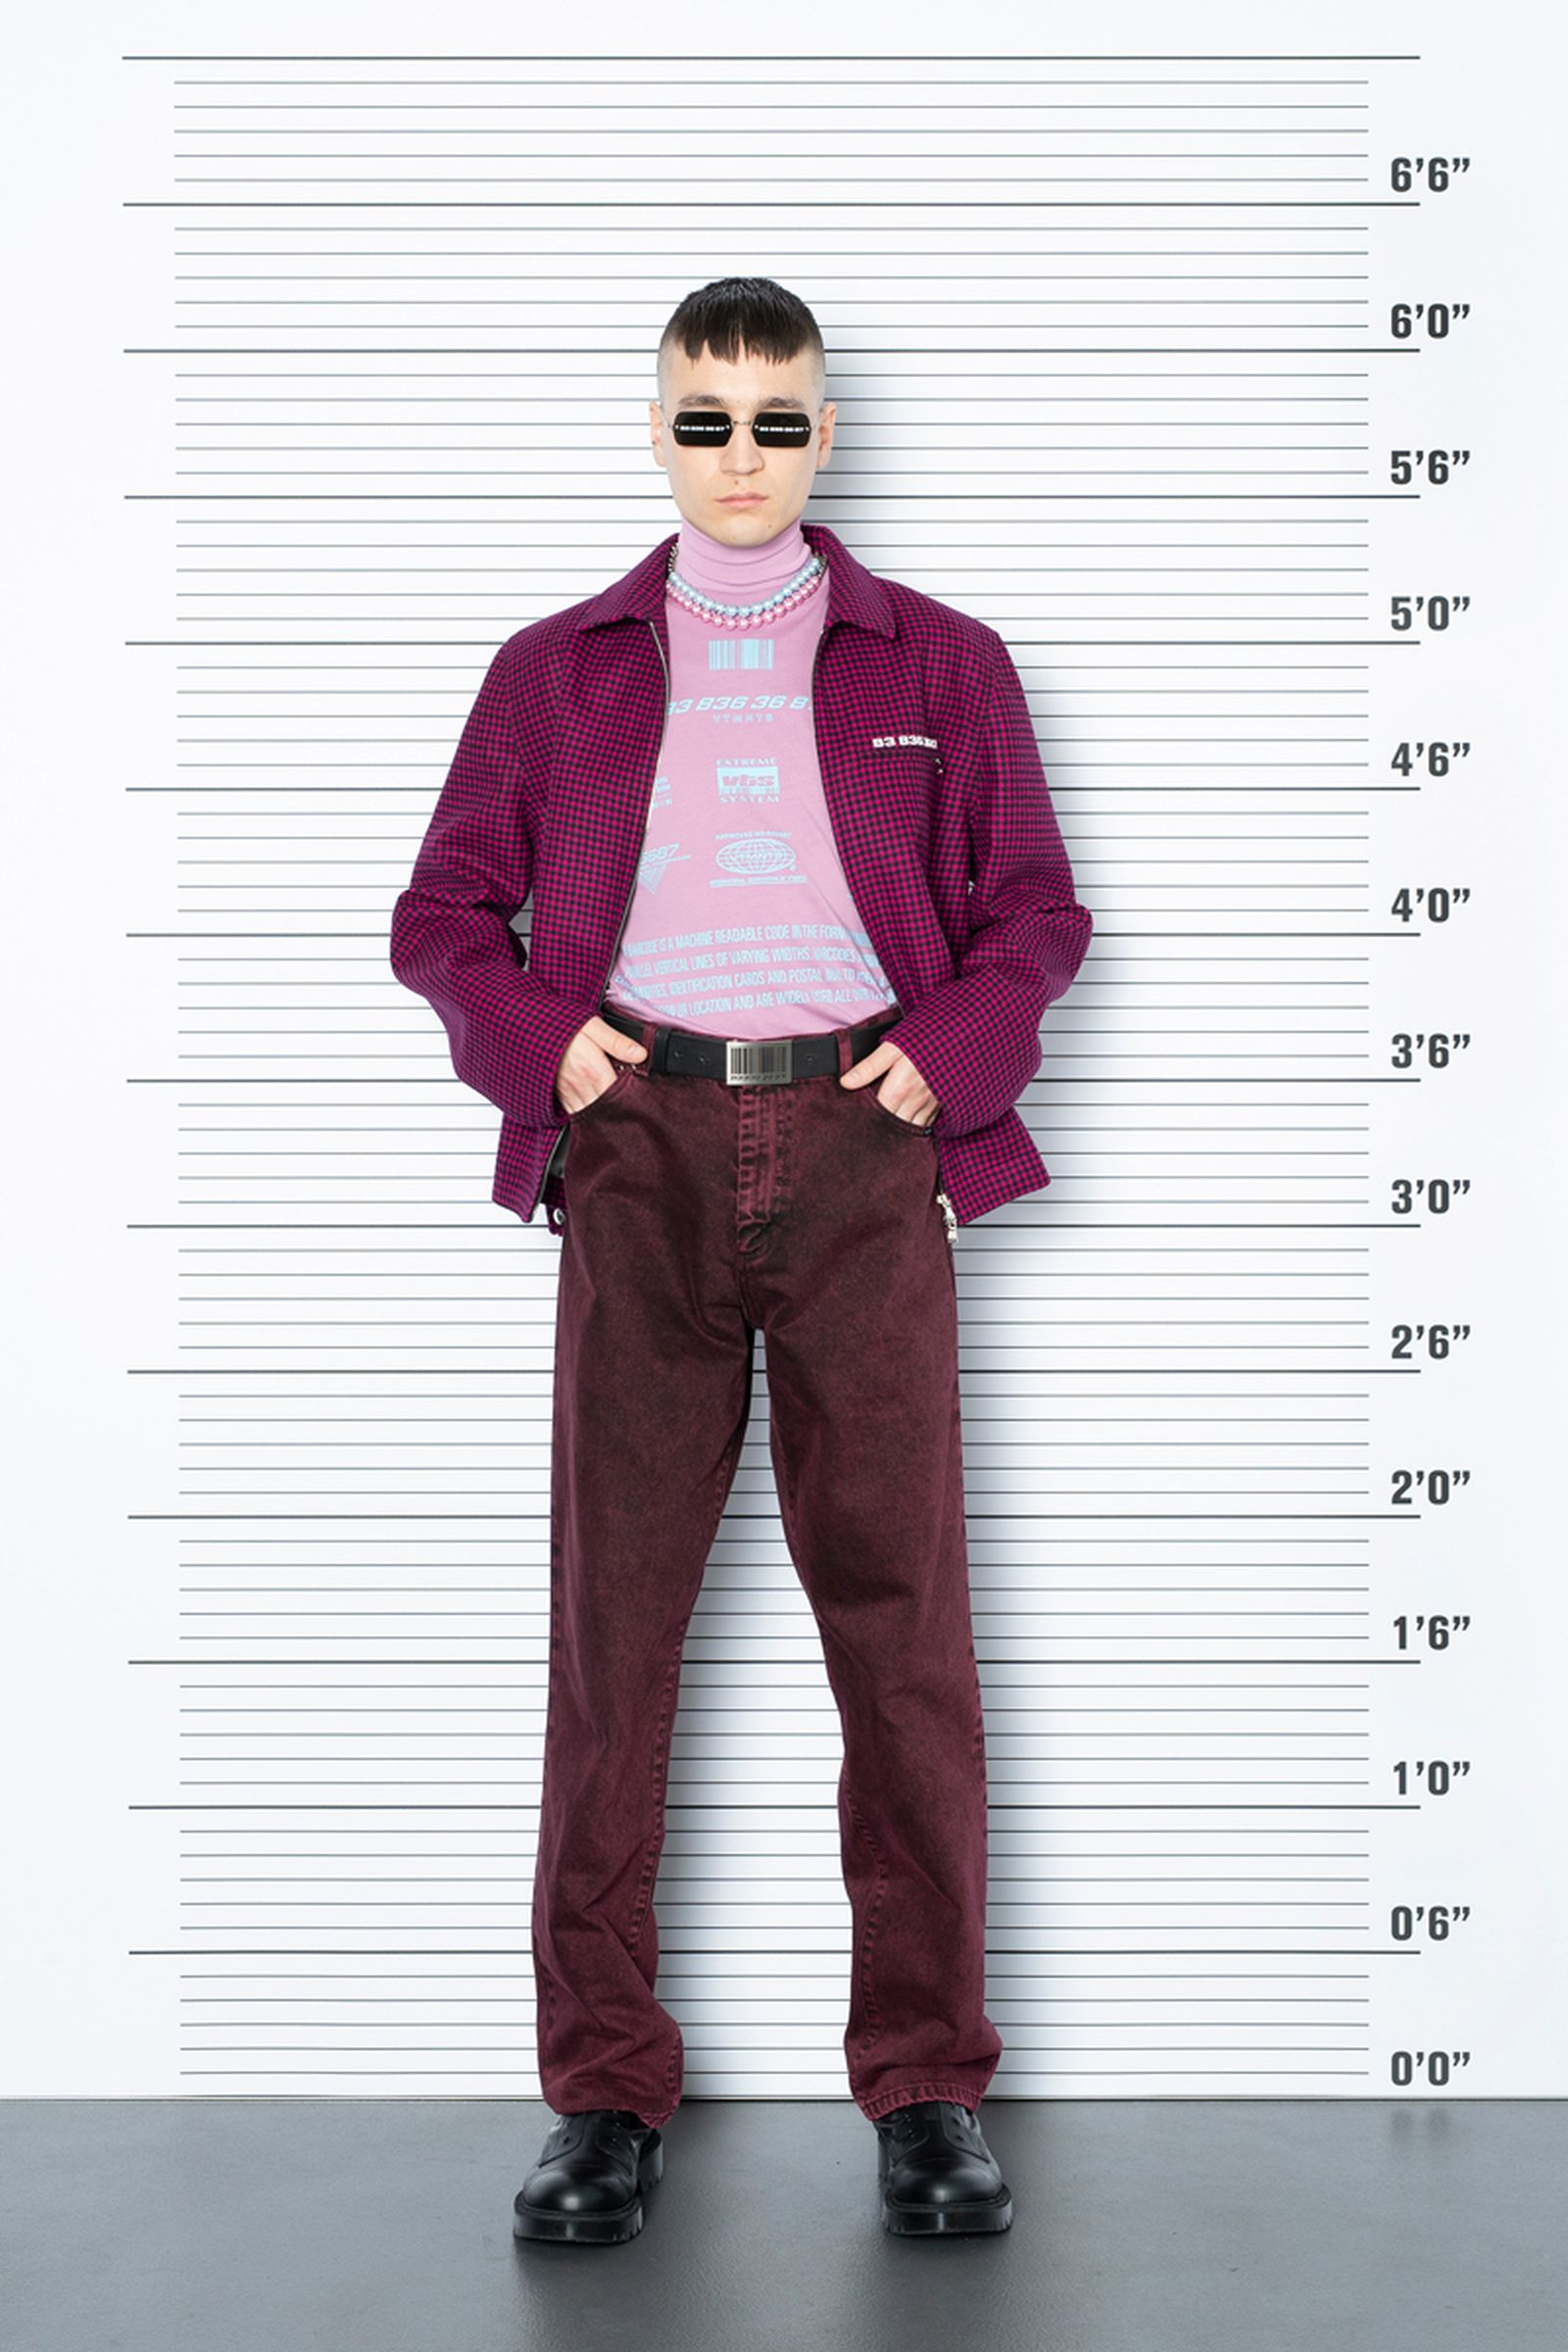 vetements-vtmnts-ss22-collection-lookbook- (81)